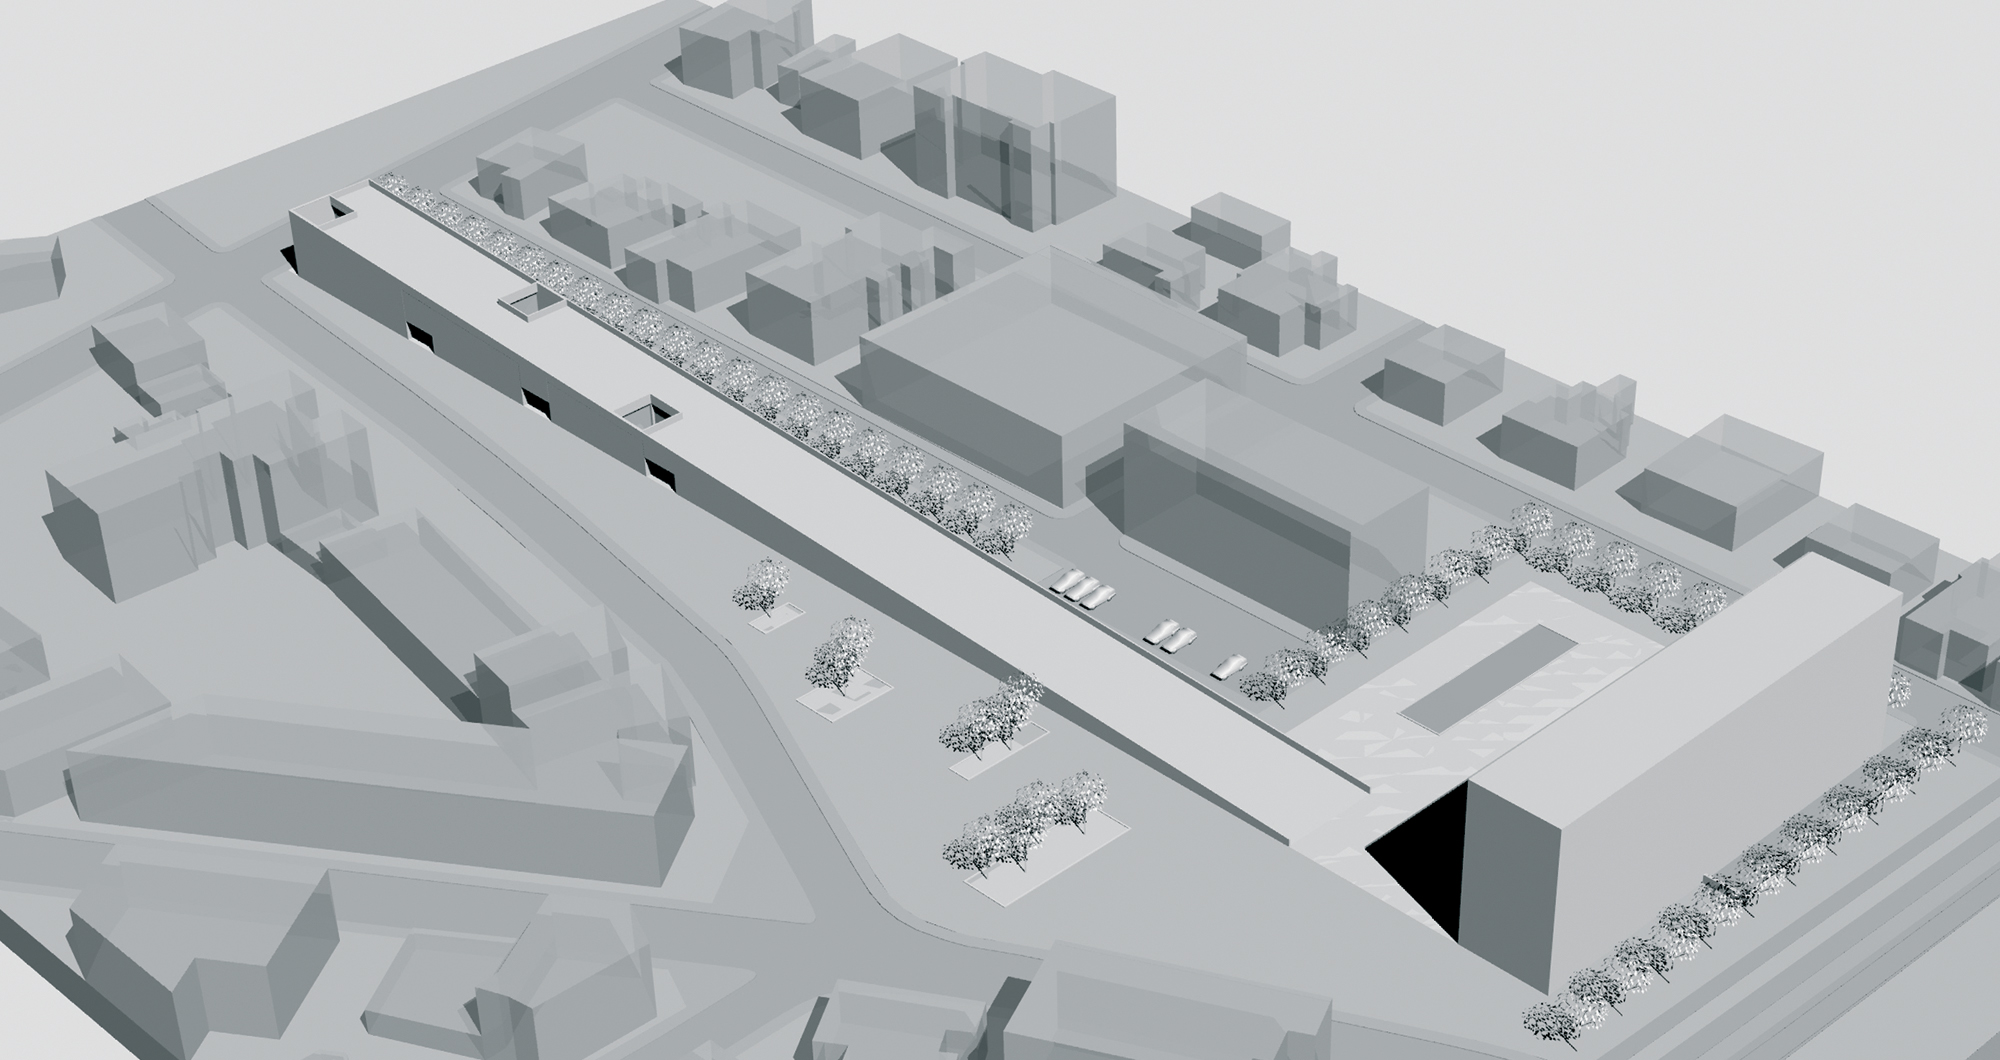 Redevelopment of San Giovanni Teatino [CH] Civic Center